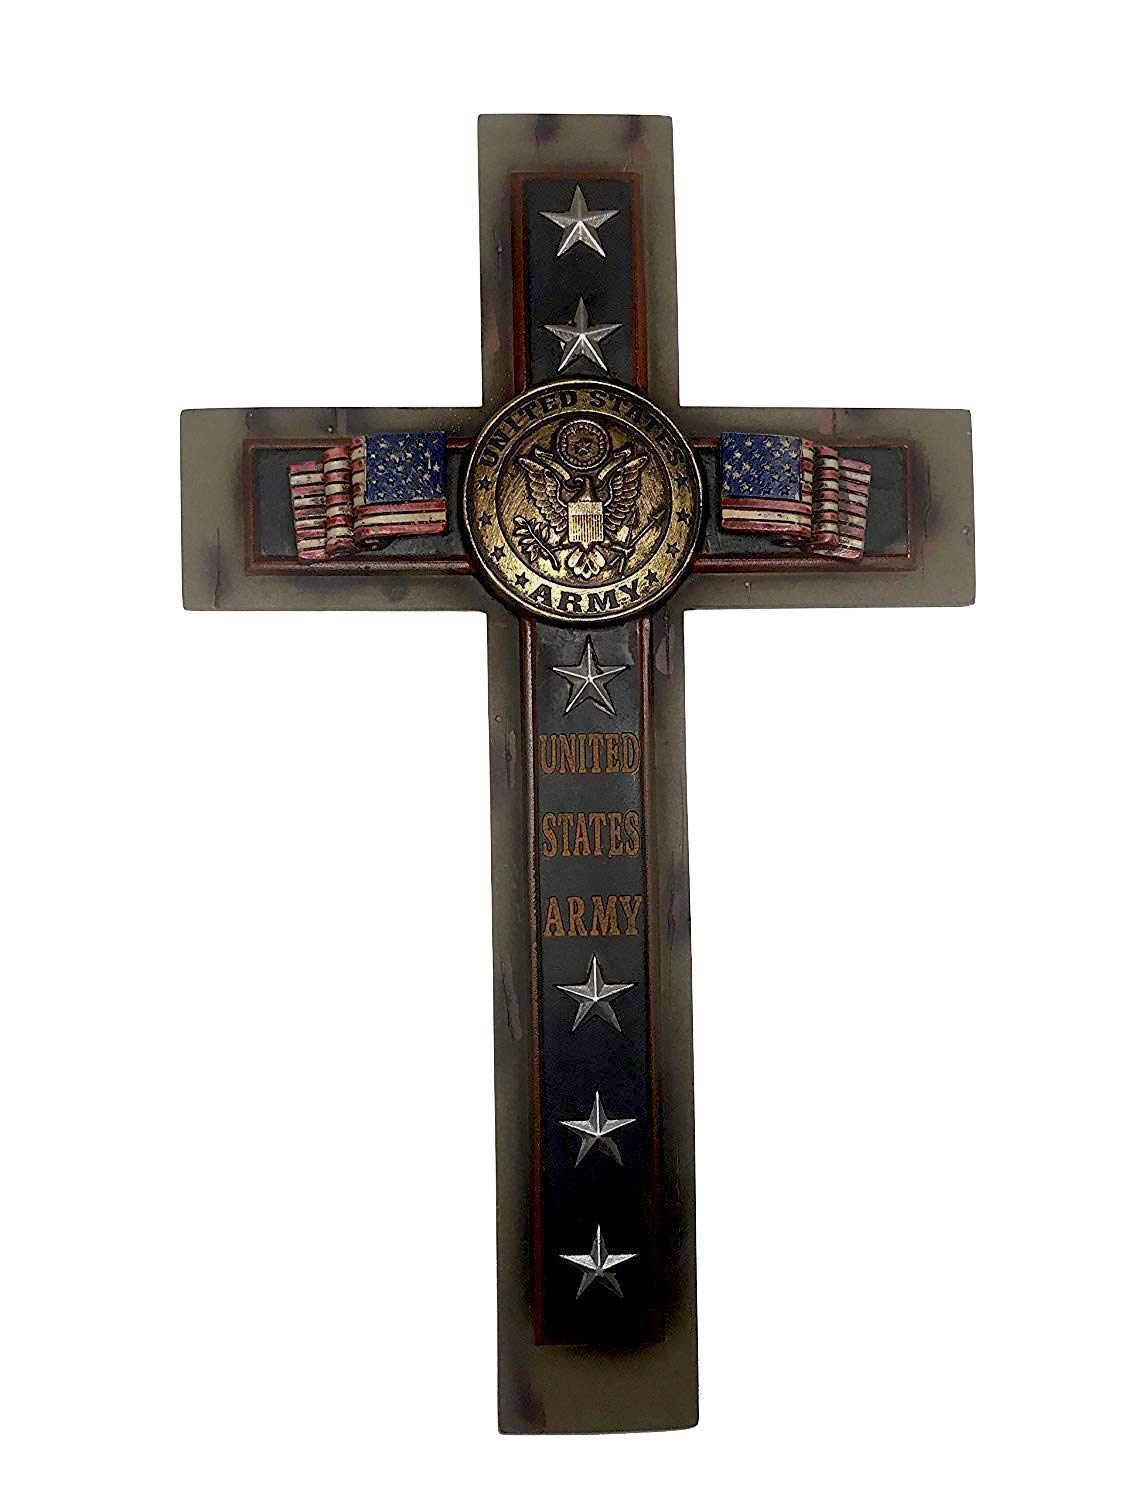 Polly House 12″ United States Army Wall Cross with Flag and Stars (RA4409)